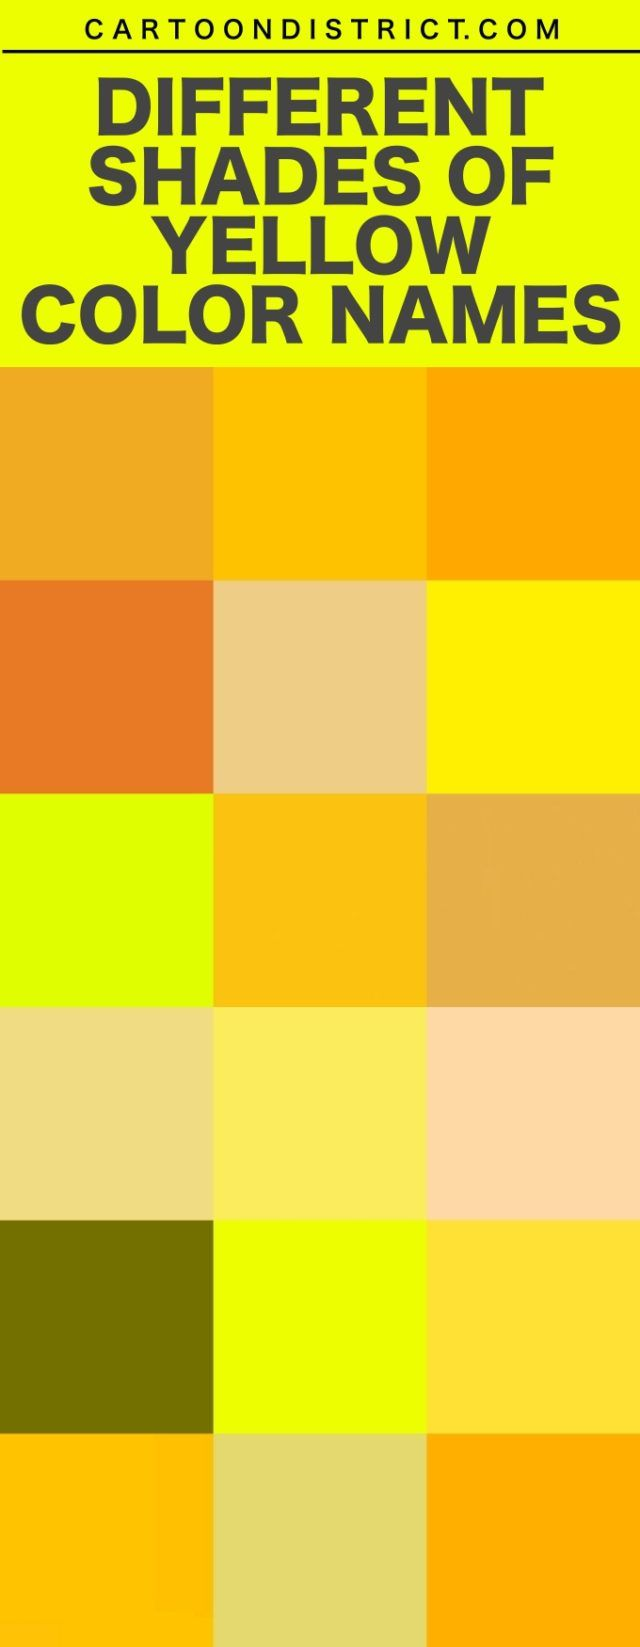 Different Shades Of Yellow Color Names Shades Of Yellow Color Blue Shades Colors Shades Of Yellow